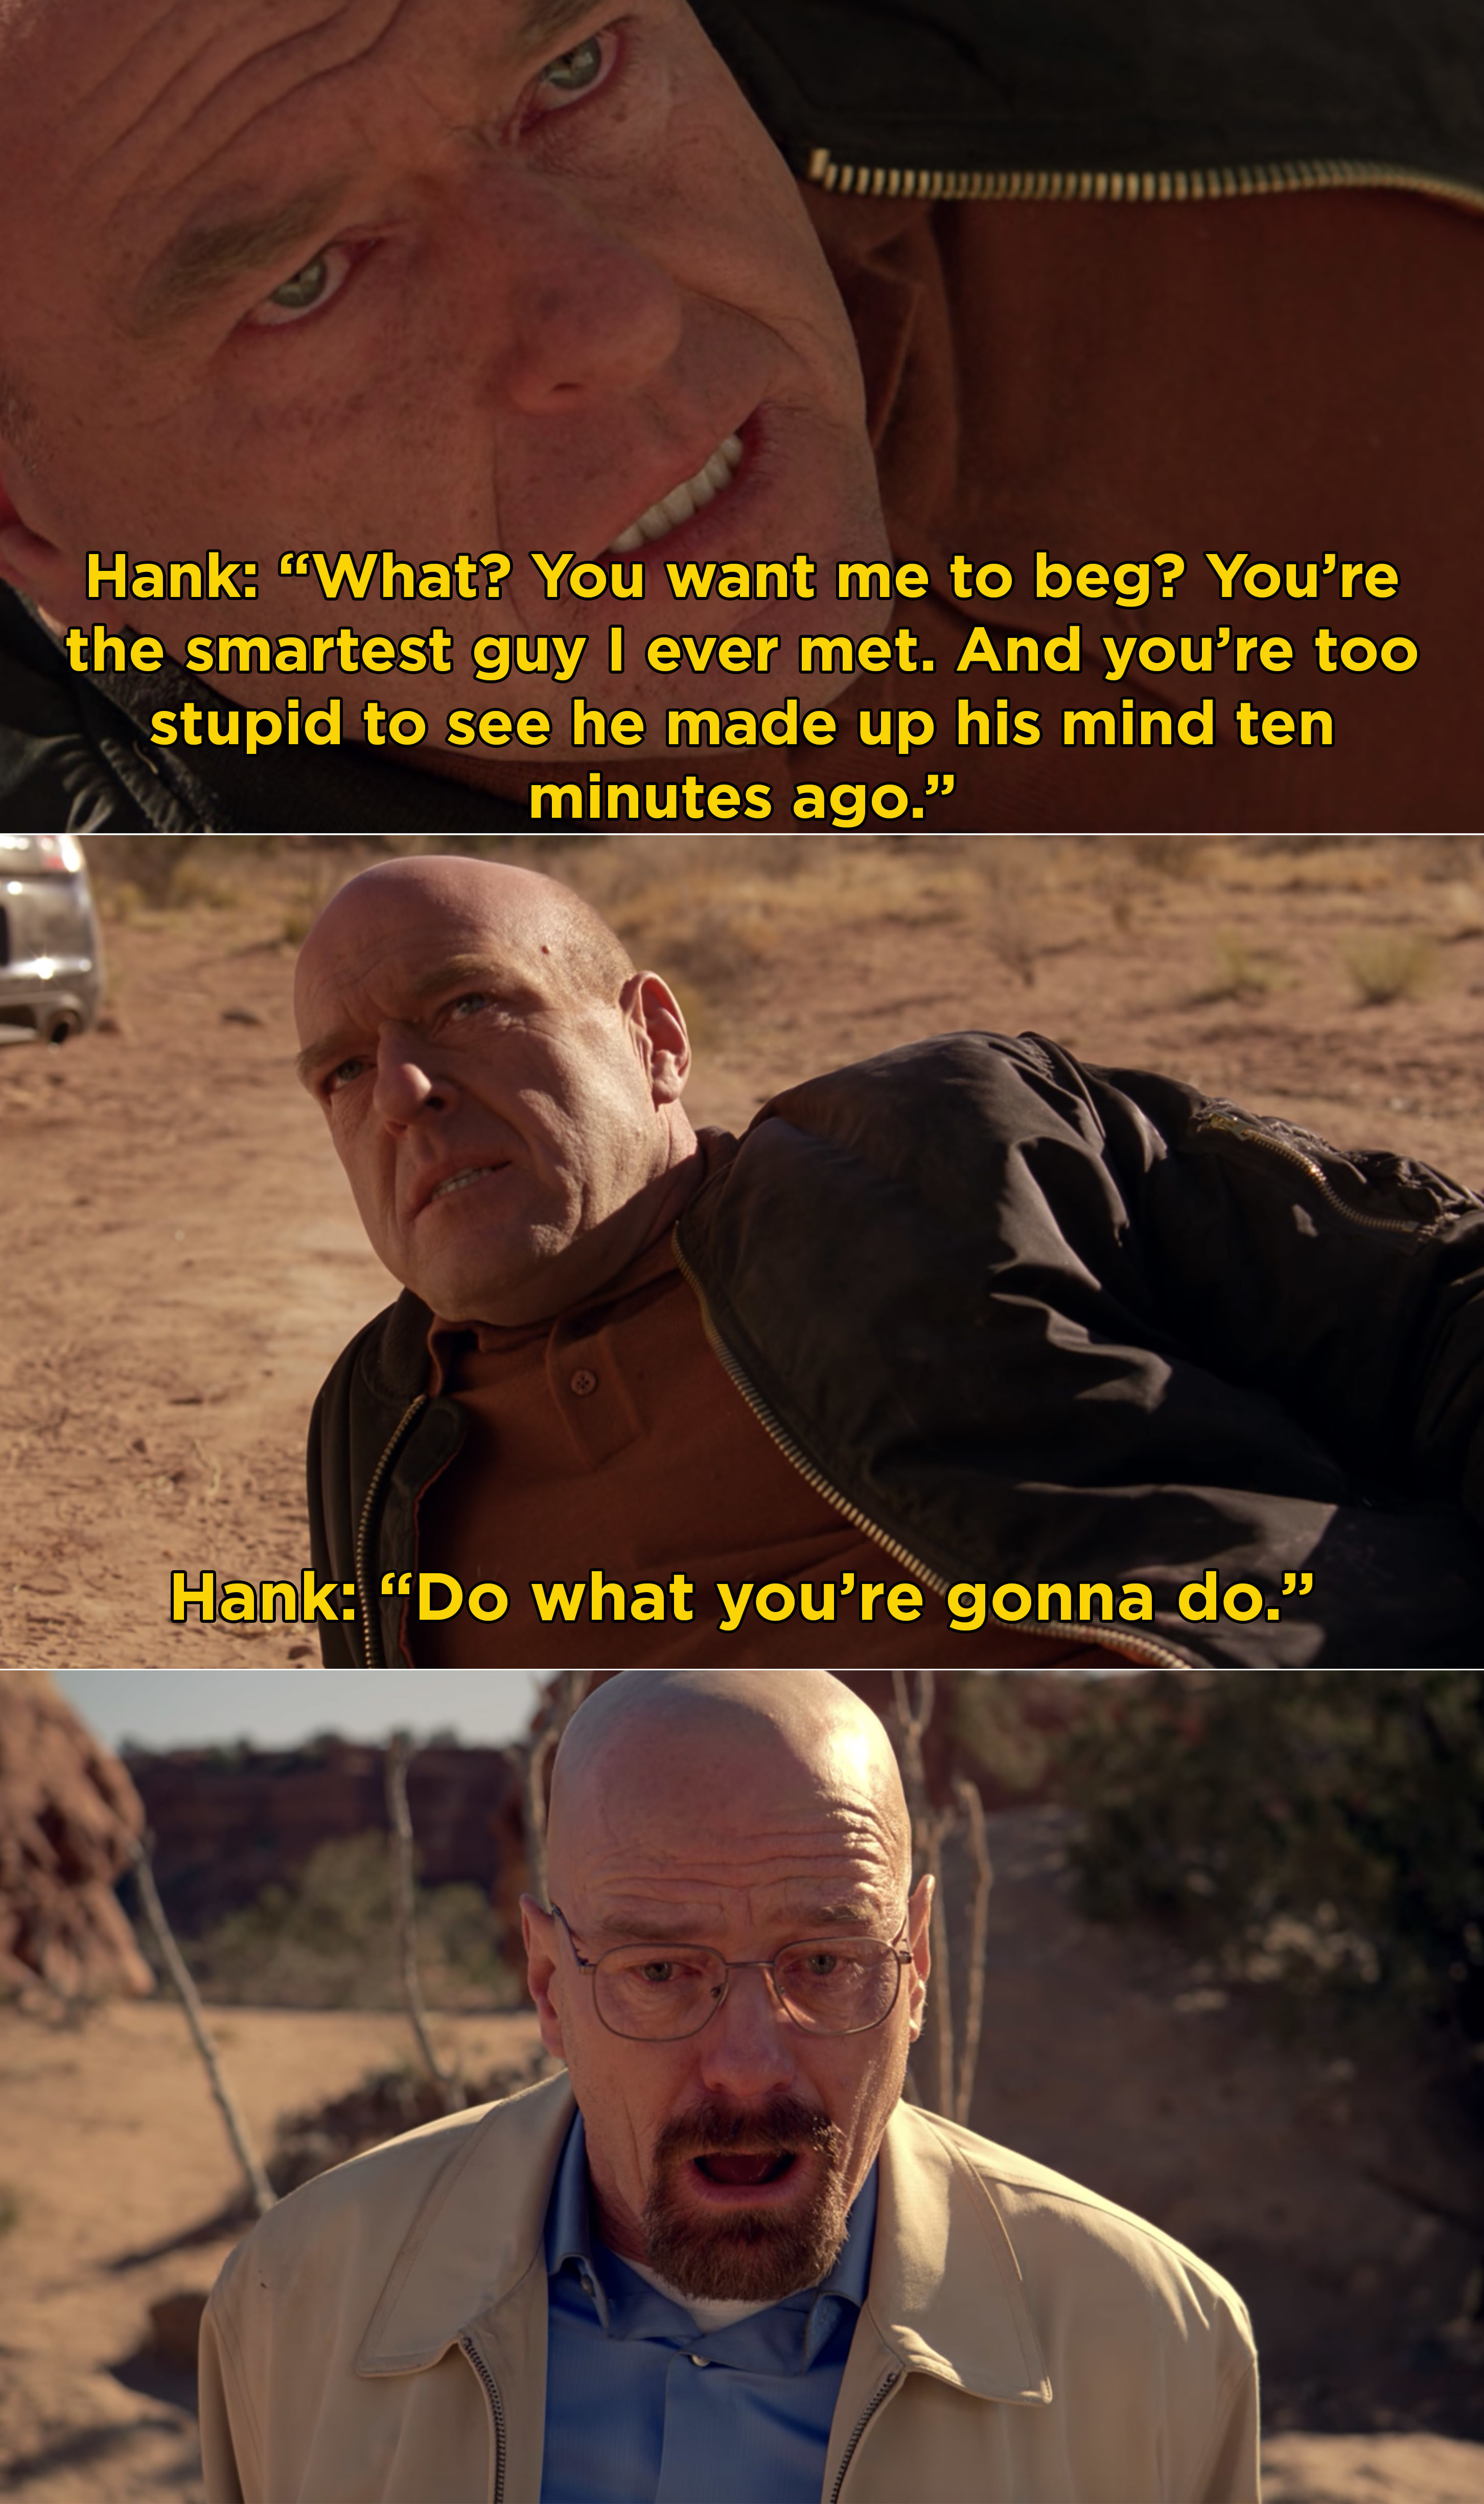 Hank telling Walt that they made up their mind ten minutes ago